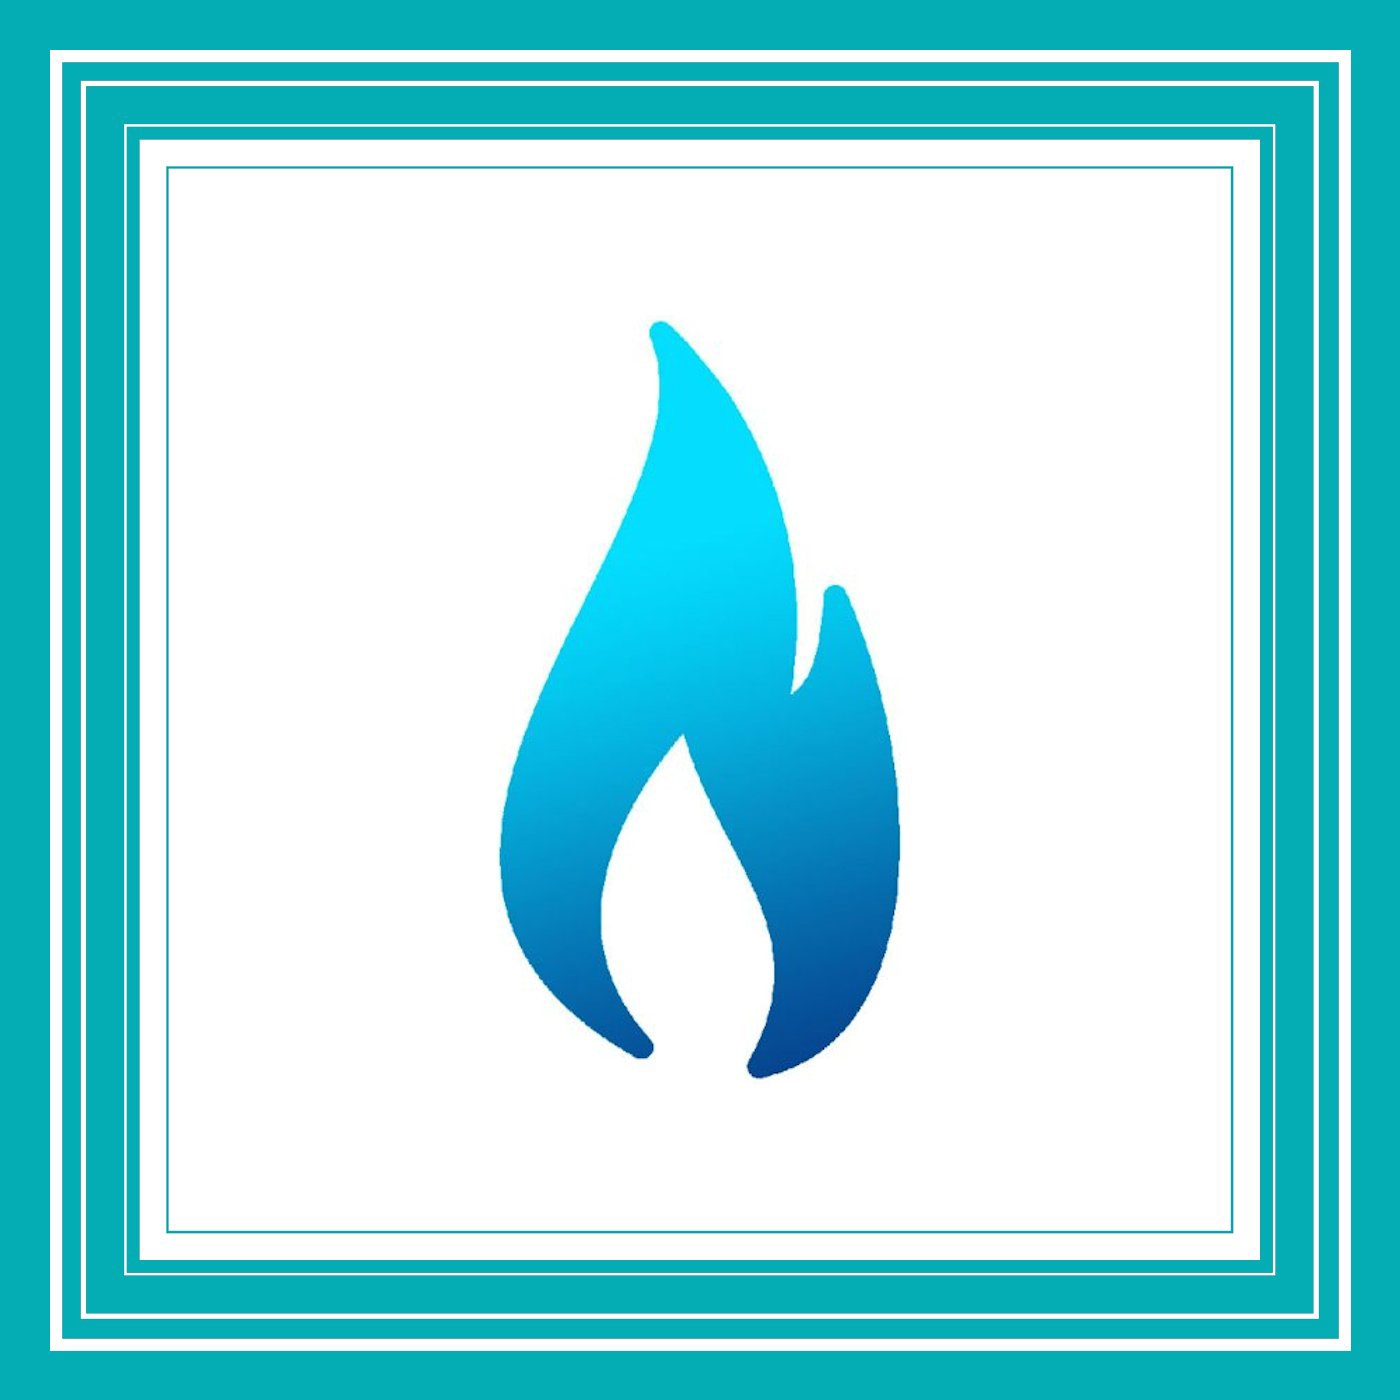 00 natural gas flame logo 141015